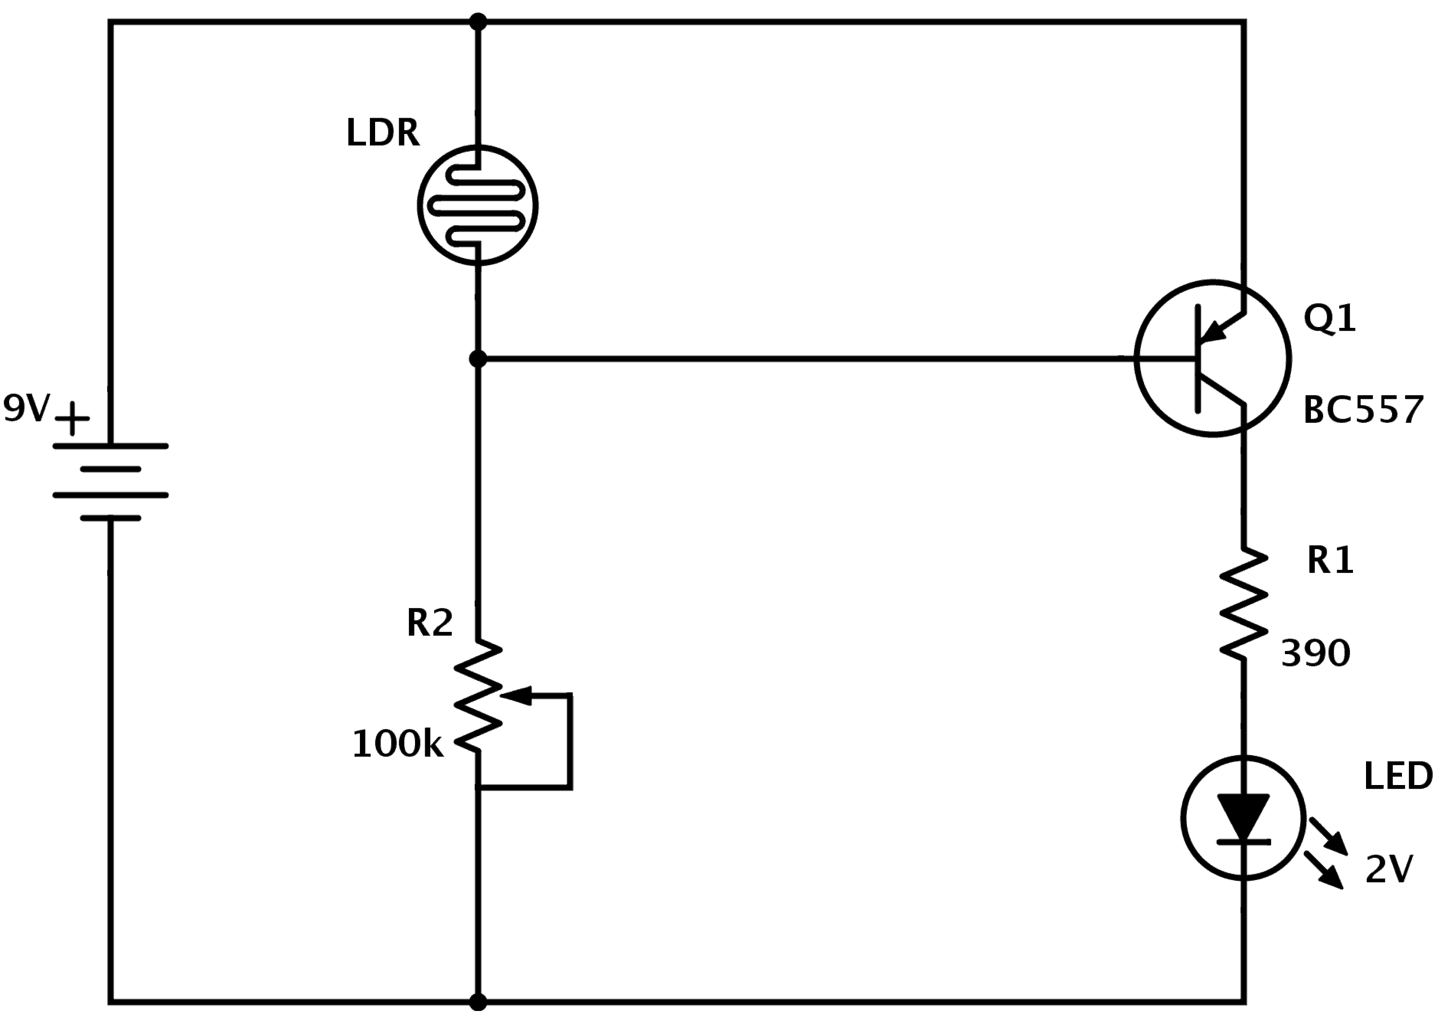 Ldr Circuit Diagram Build Electronic Circuits Task Lighting Wiring With Pnp Transistor Dark Detector